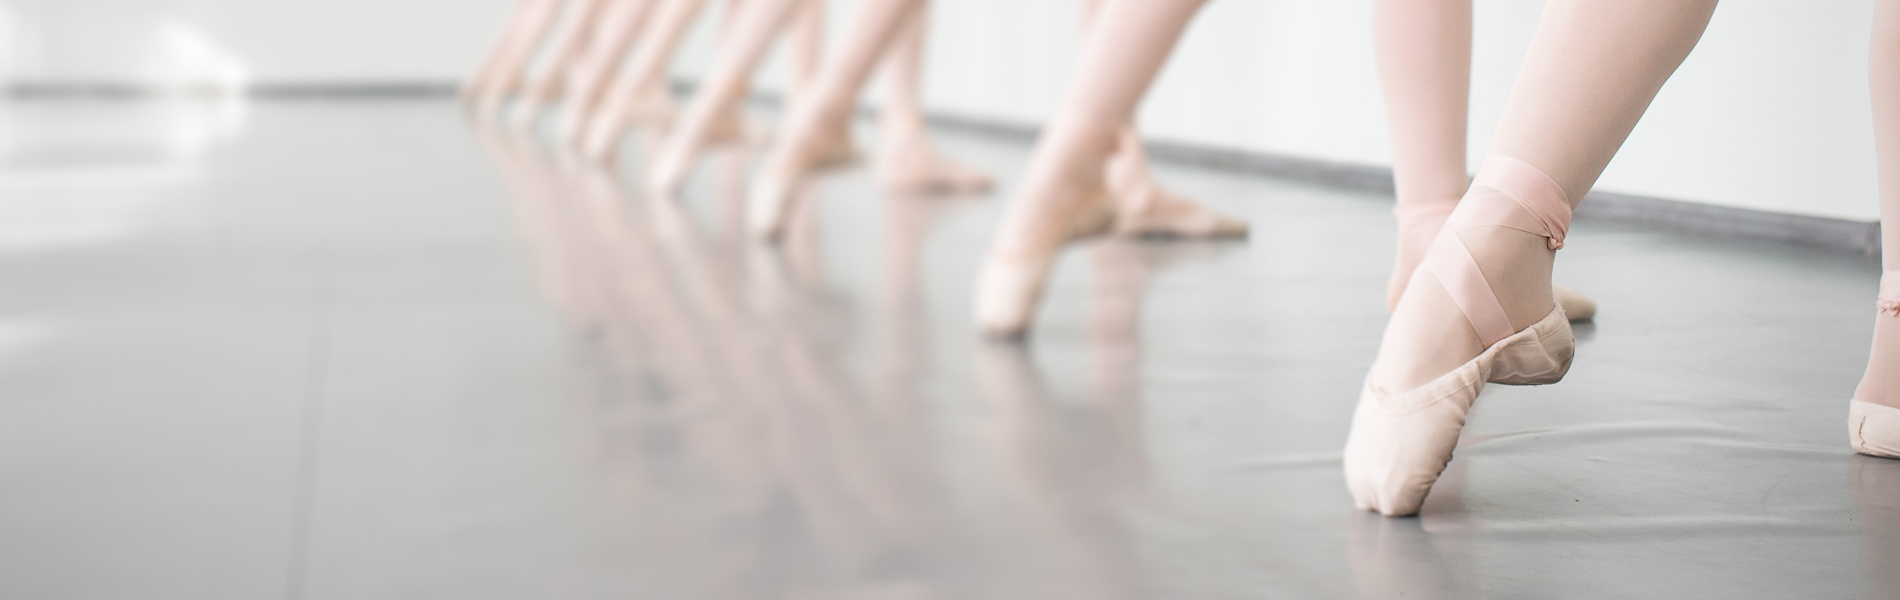 What-to-Look-for-in-Dance-School-Management-Software_1900x600.jpg